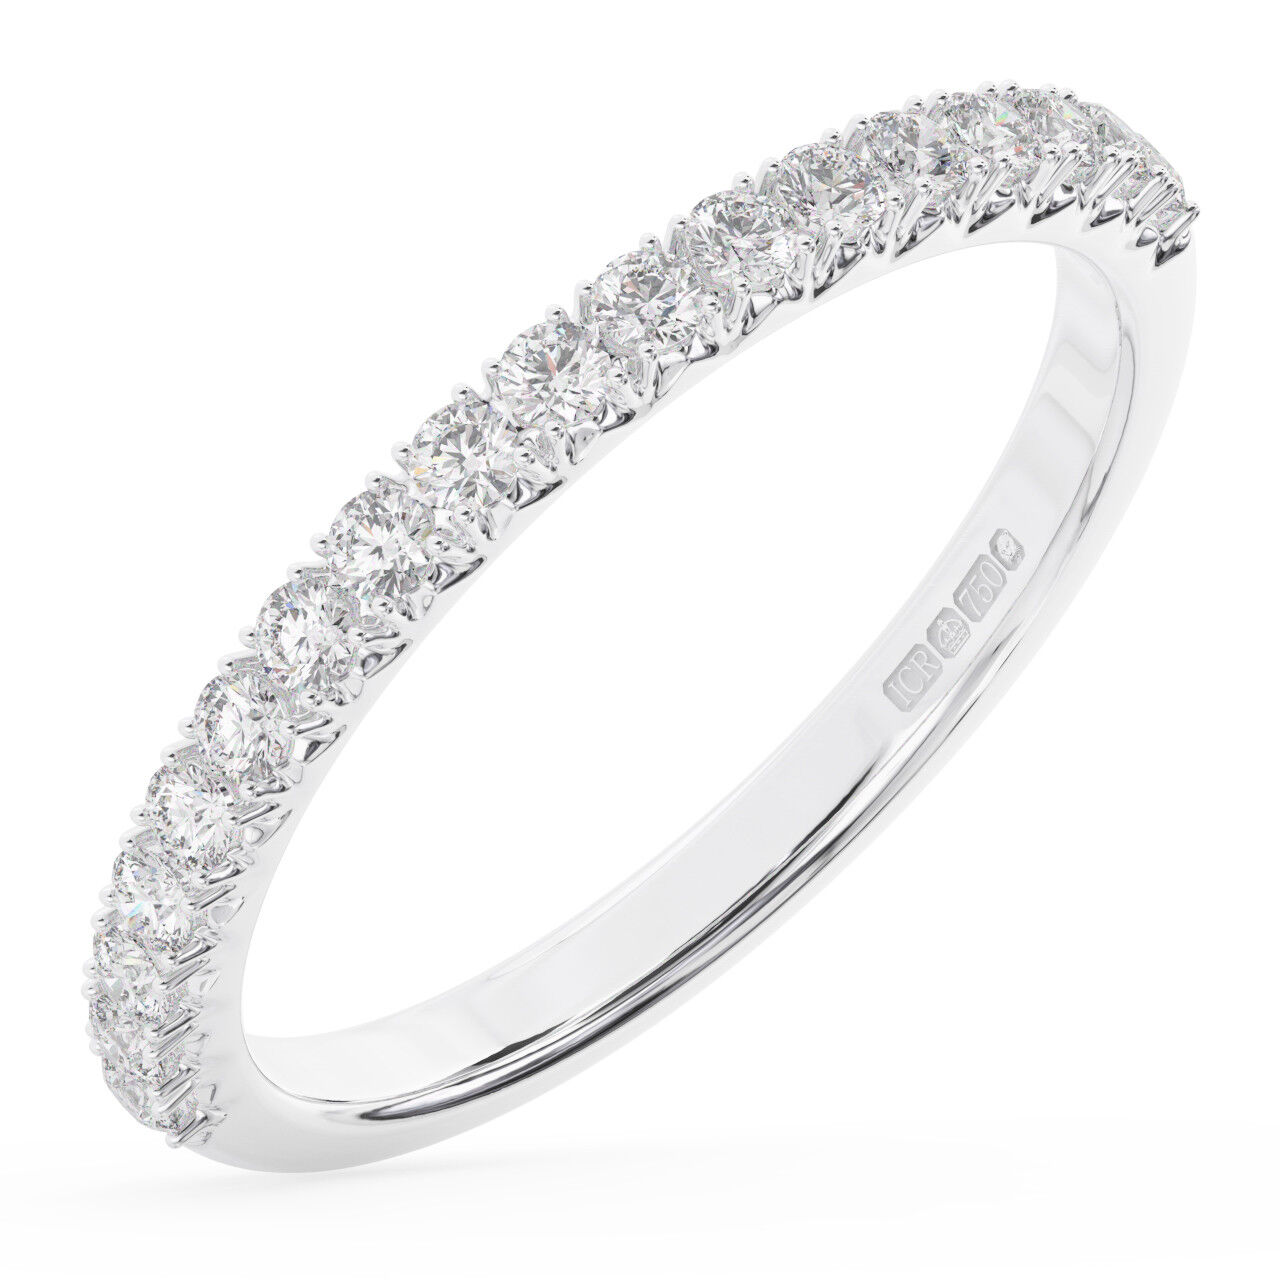 0.35Carat Round Brilliant Cut Diamonds Half Eternity Wedding Ring in18K gold